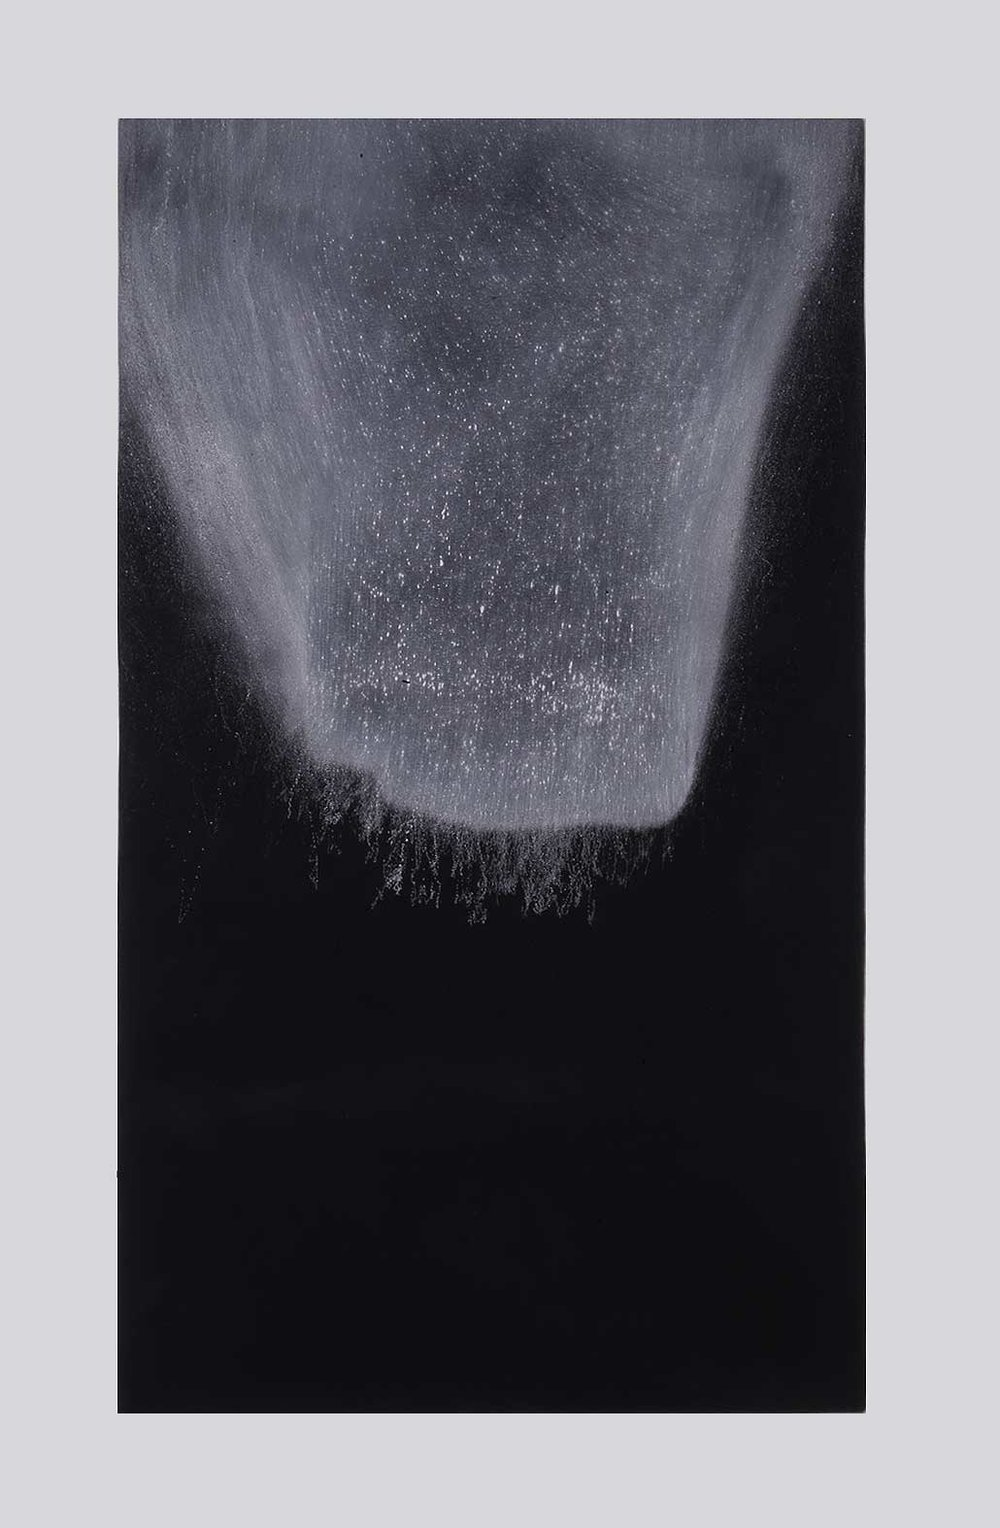 ENCROACHING VISTA  1997  limestone powder on carbon deposit  114.4 x 76.3 cm    (private collection UK)